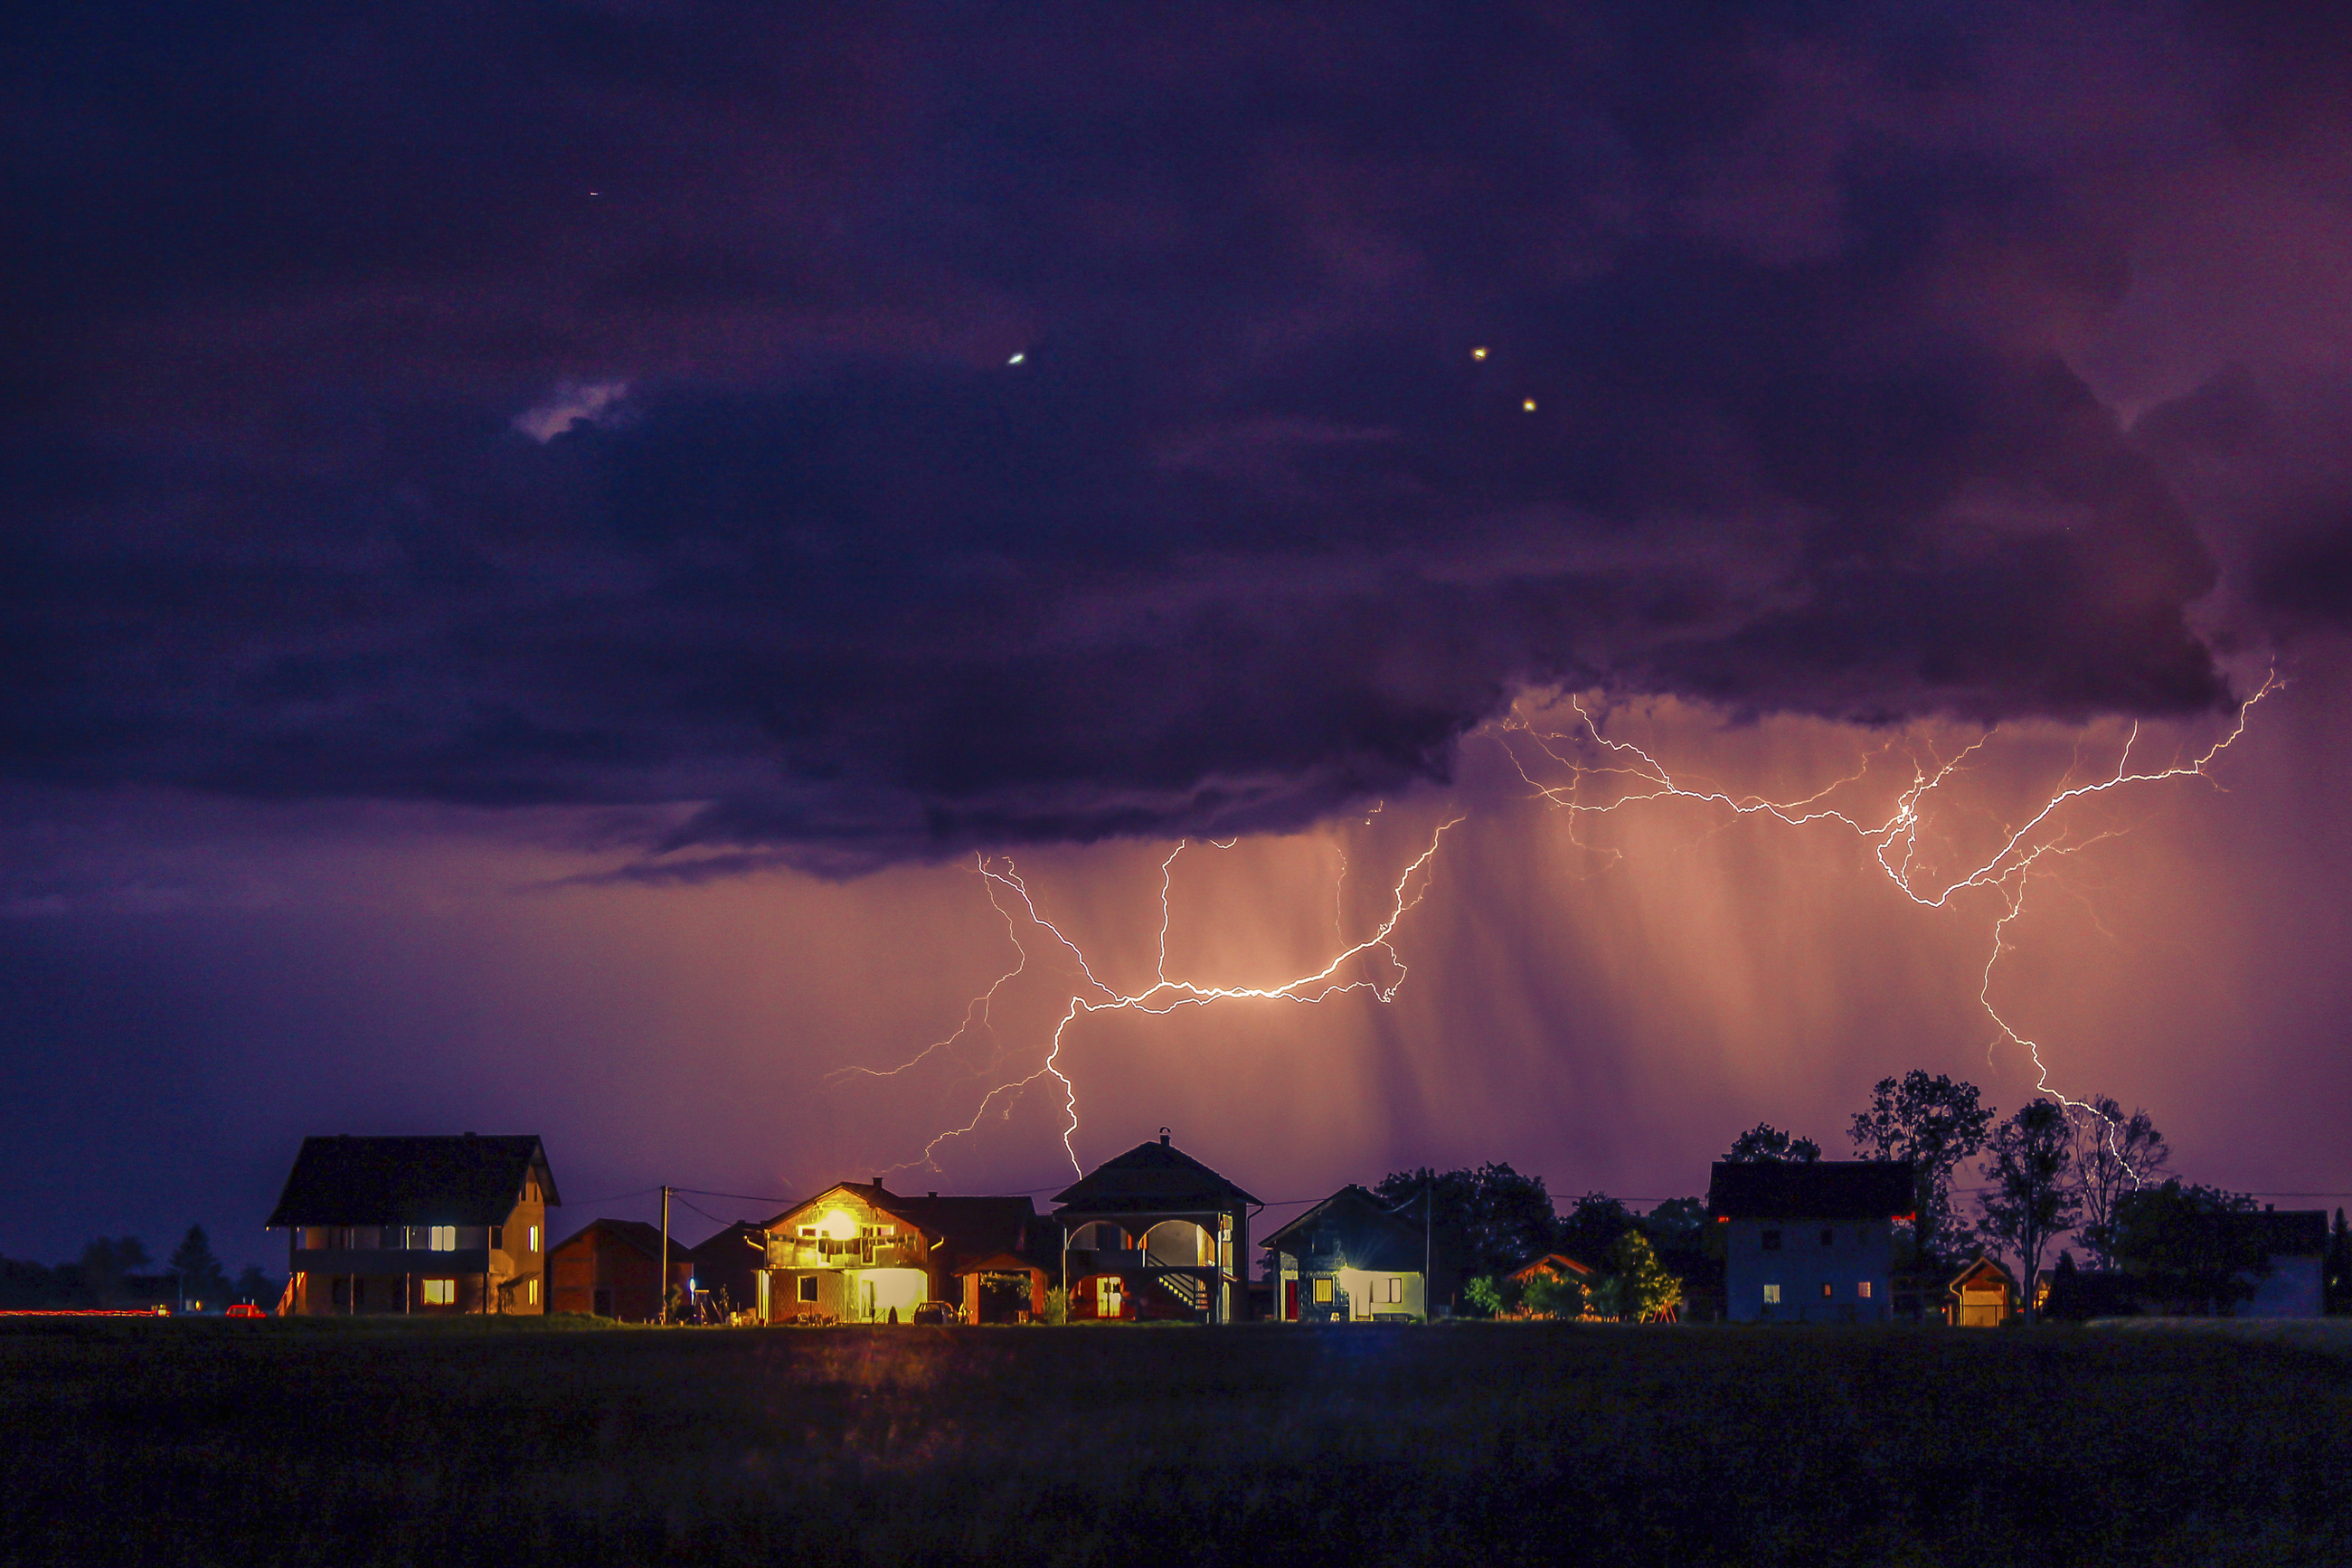 During Severe Storms, Falling Tree Limbs, Lightning Strikes And High Winds  Can Wreak Havoc On The Electric Distribution Grid. With Widespread Outages  ...